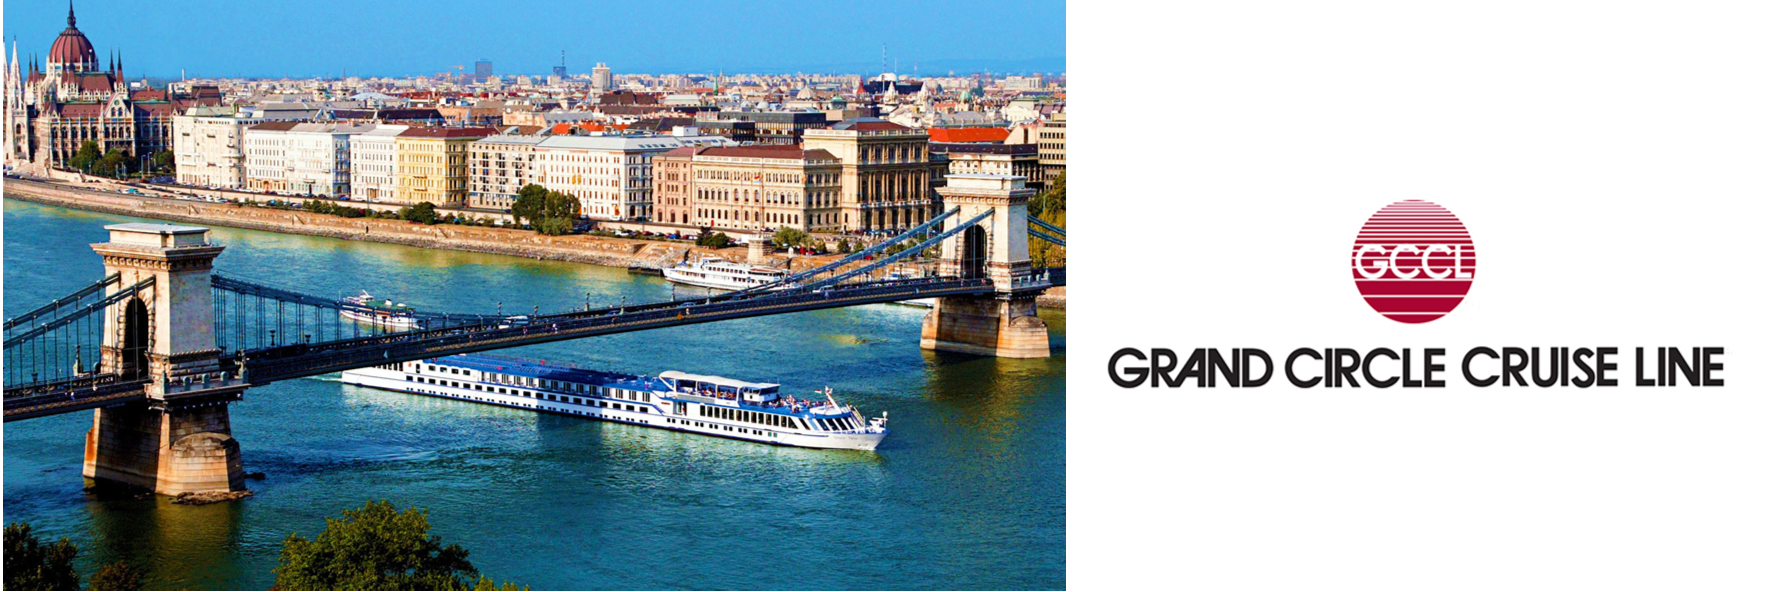 Jobs on Grand Circle Cruise Line's river ships